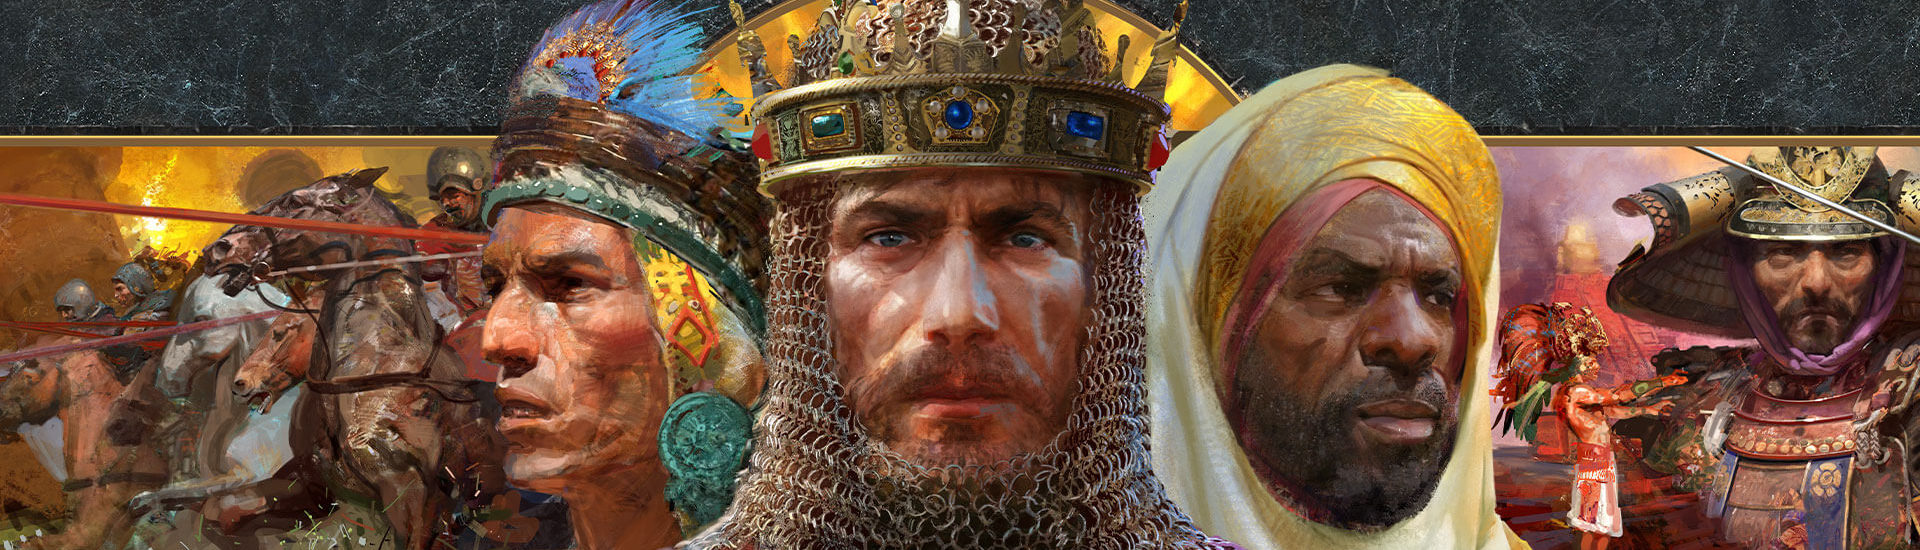 Age of Empires 2 Definitive Edition - ein RTS Klassiker in Neuauflage